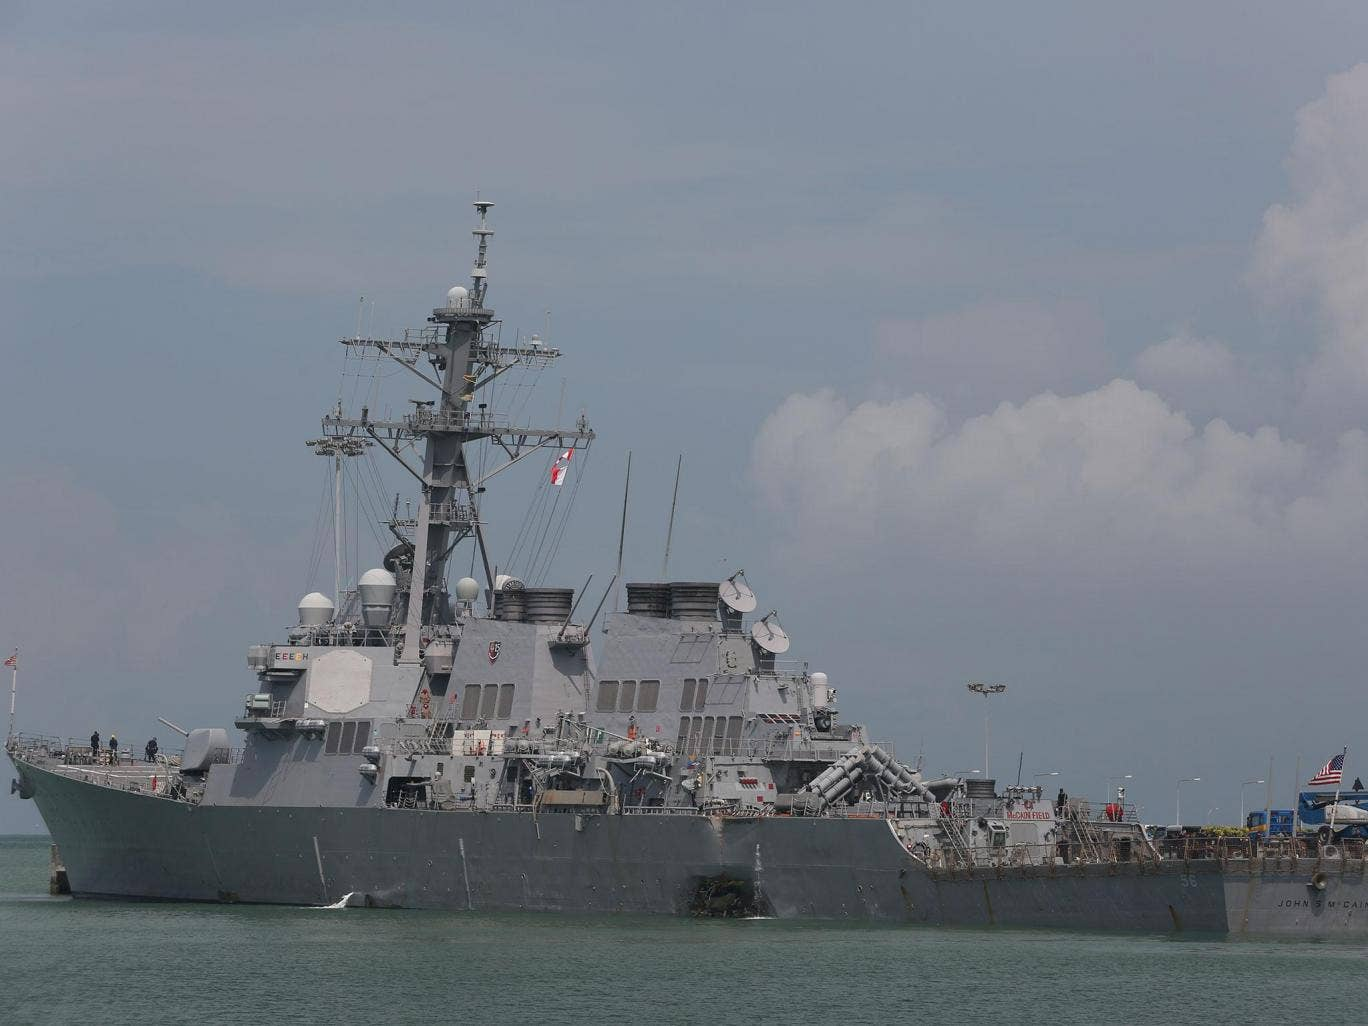 Indonesian fleet continues to suffer losses